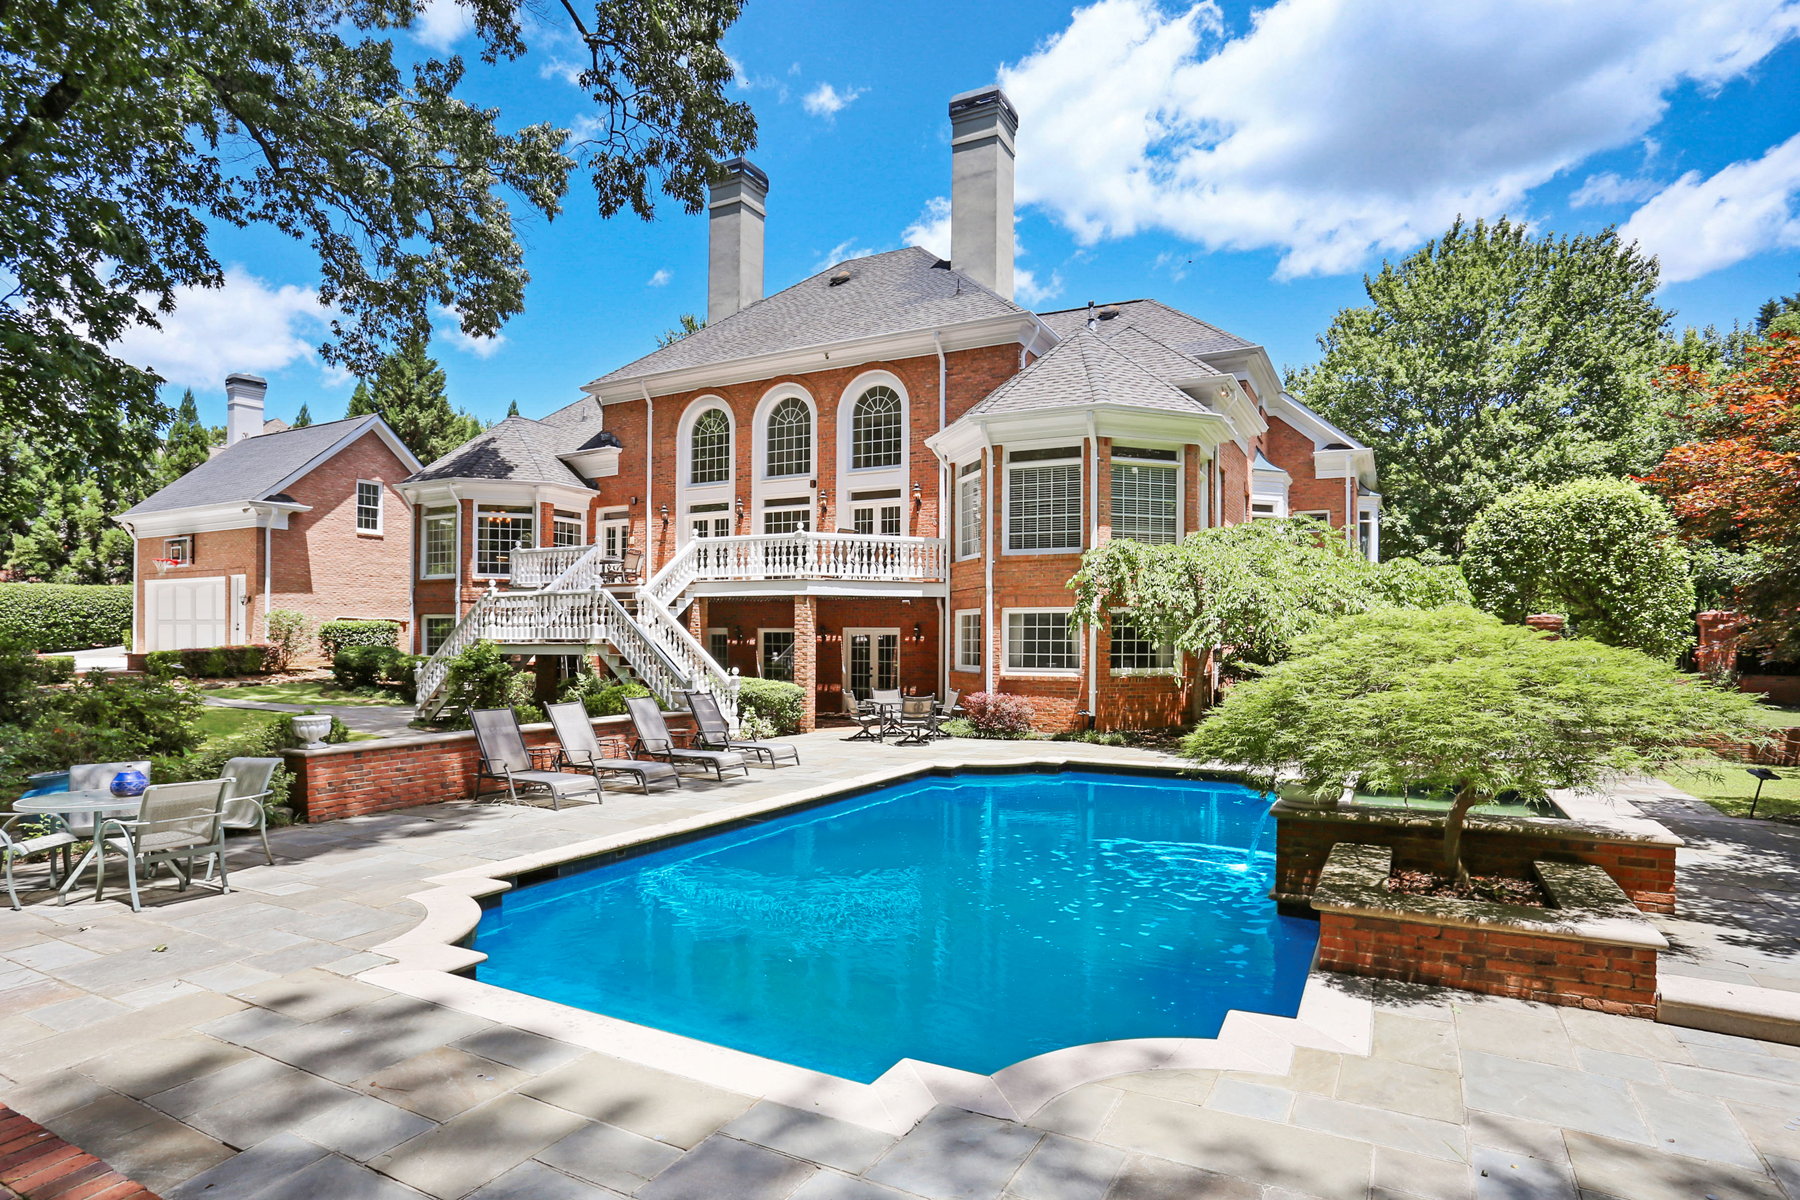 Single Family Homes for Sale at Diamond In The Rough Luxury Resort Style Home With Splendid Gardens And Pool 4075 Merriweather Woods Johns Creek, Georgia 30022 United States